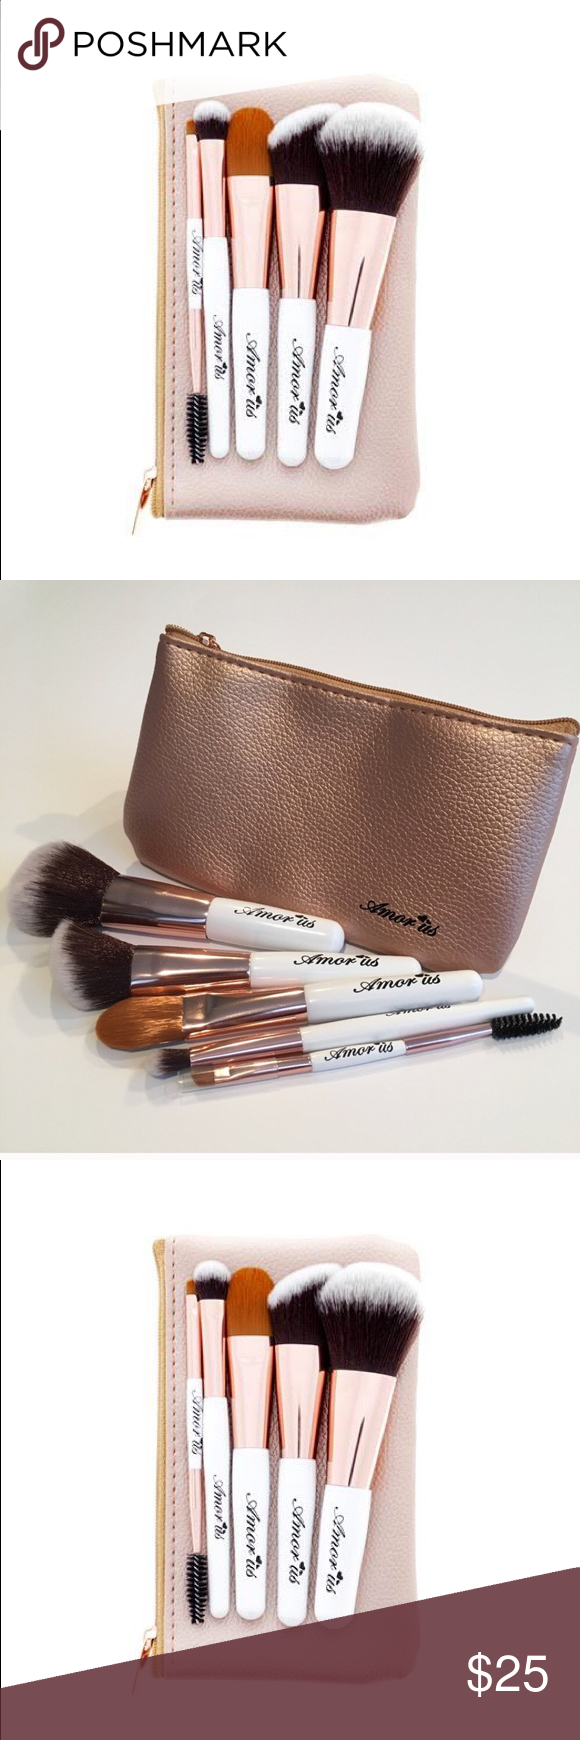 Vegan Petit Travel  essentials Makeup Brush Set This 5-Piece Set Petite Travel Essentials Makeup Brush Set will give flawless makeup while on the go. It features soft synthetic, cruelty free and vegan brushes accompanied by an adorable and snug rose gold brush pouch perfect for travel.  5-Piece Set Petite Travel Essentials Makeup Brush Set with Pouch Cruelty Free & Vegan Soft & Dense Synthetic Fibers Amorus USA Best Value amor us Accessories